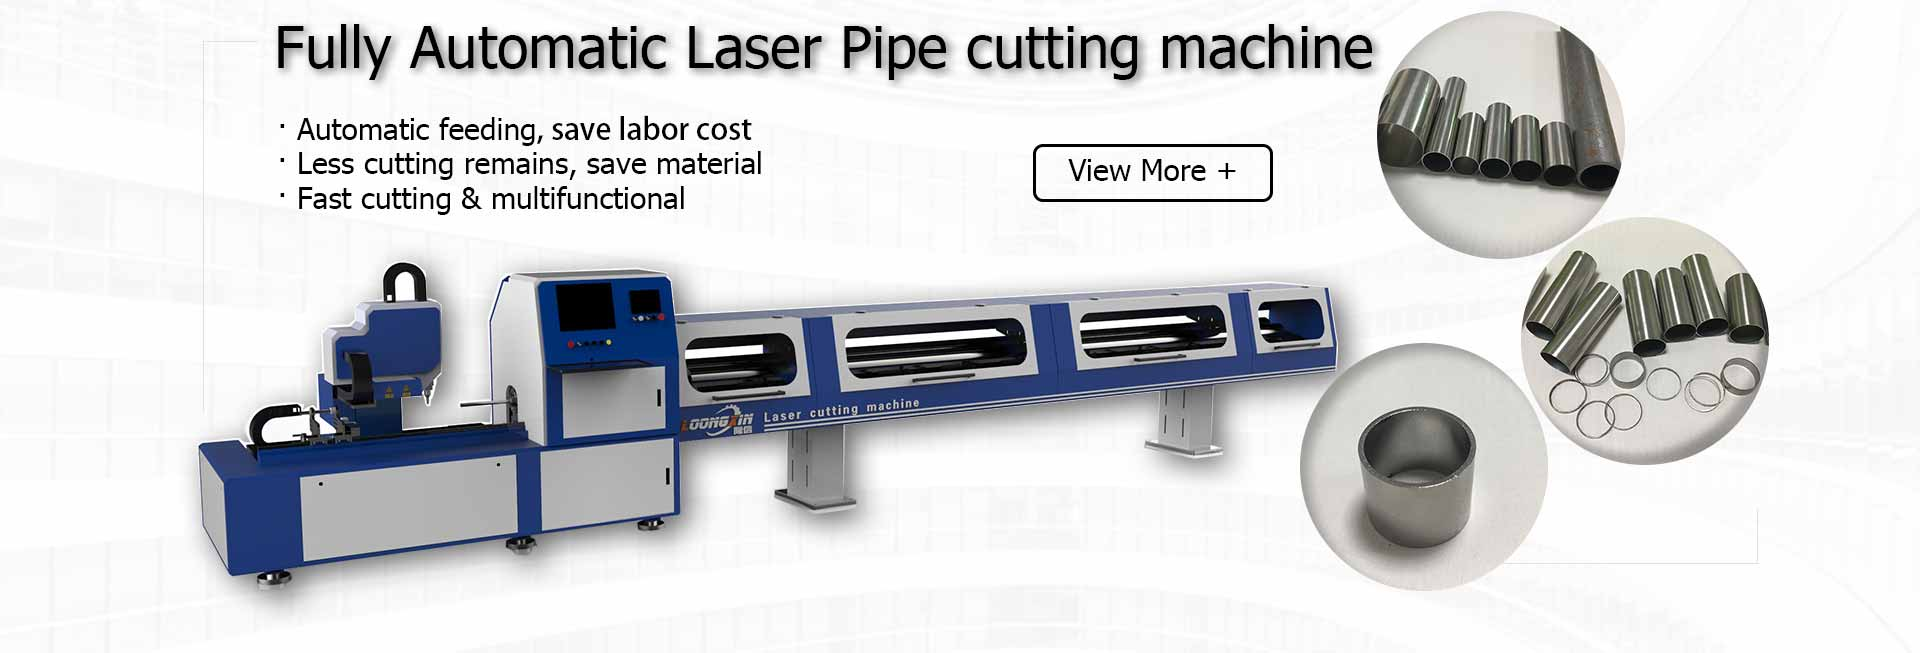 fully automatic laser pipe cutting machine